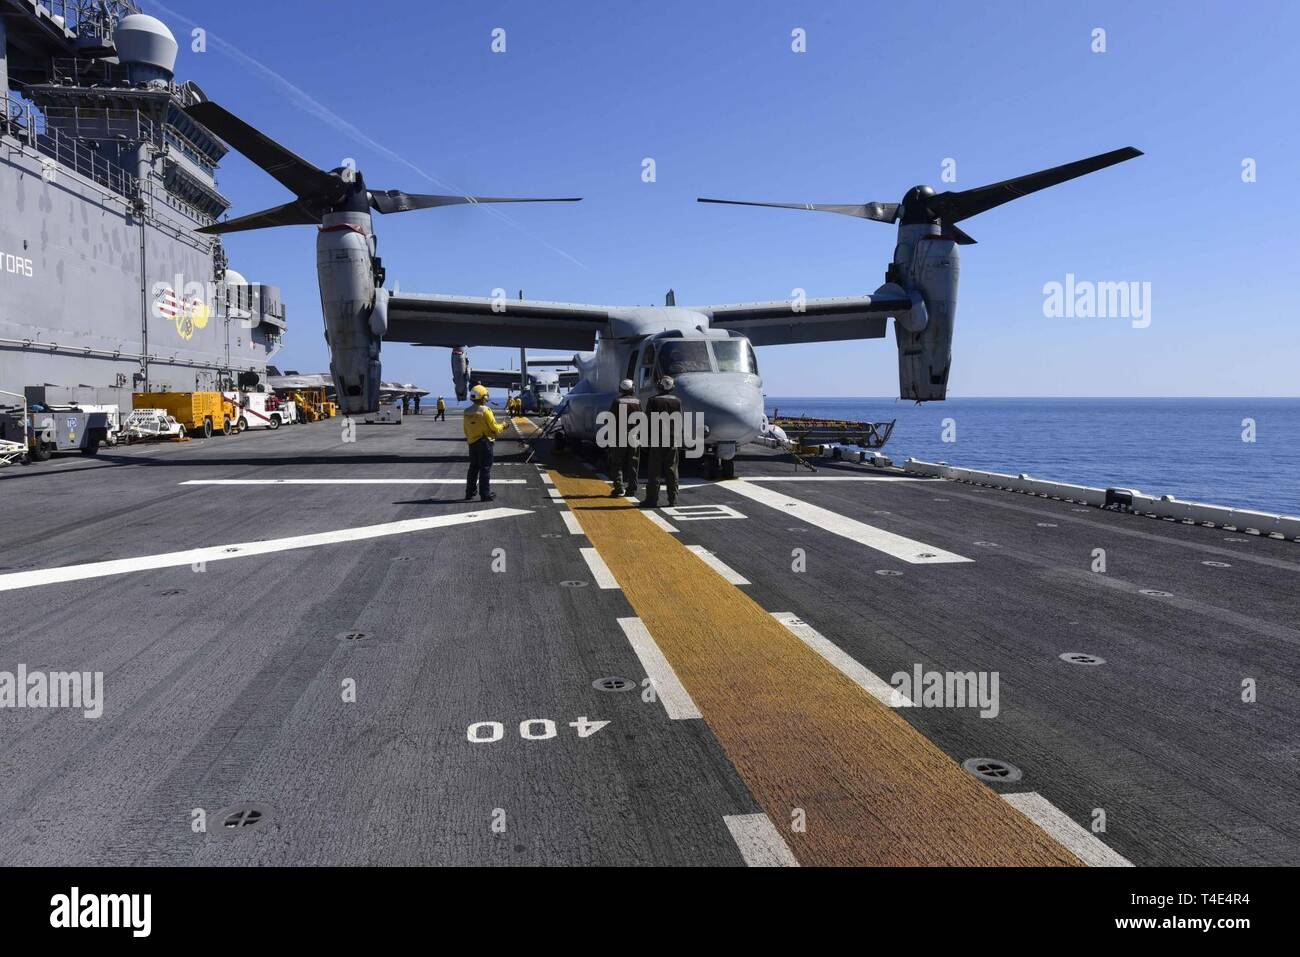 SOUTH CHINA SEA (March 29, 2019) - An MV-22 Osprey, assigned to Marine Medium Tiltrotor Squadron (VMM) 268, is secured to the flight deck of the amphibious assault ship USS Wasp (LHD 1). Wasp, flagship of Wasp Amphibious Ready Group, is operating in the Indo-Pacific region to enhance interoperability with partners and serve as a lethal ready-response force for any type of contingency. - Stock Image